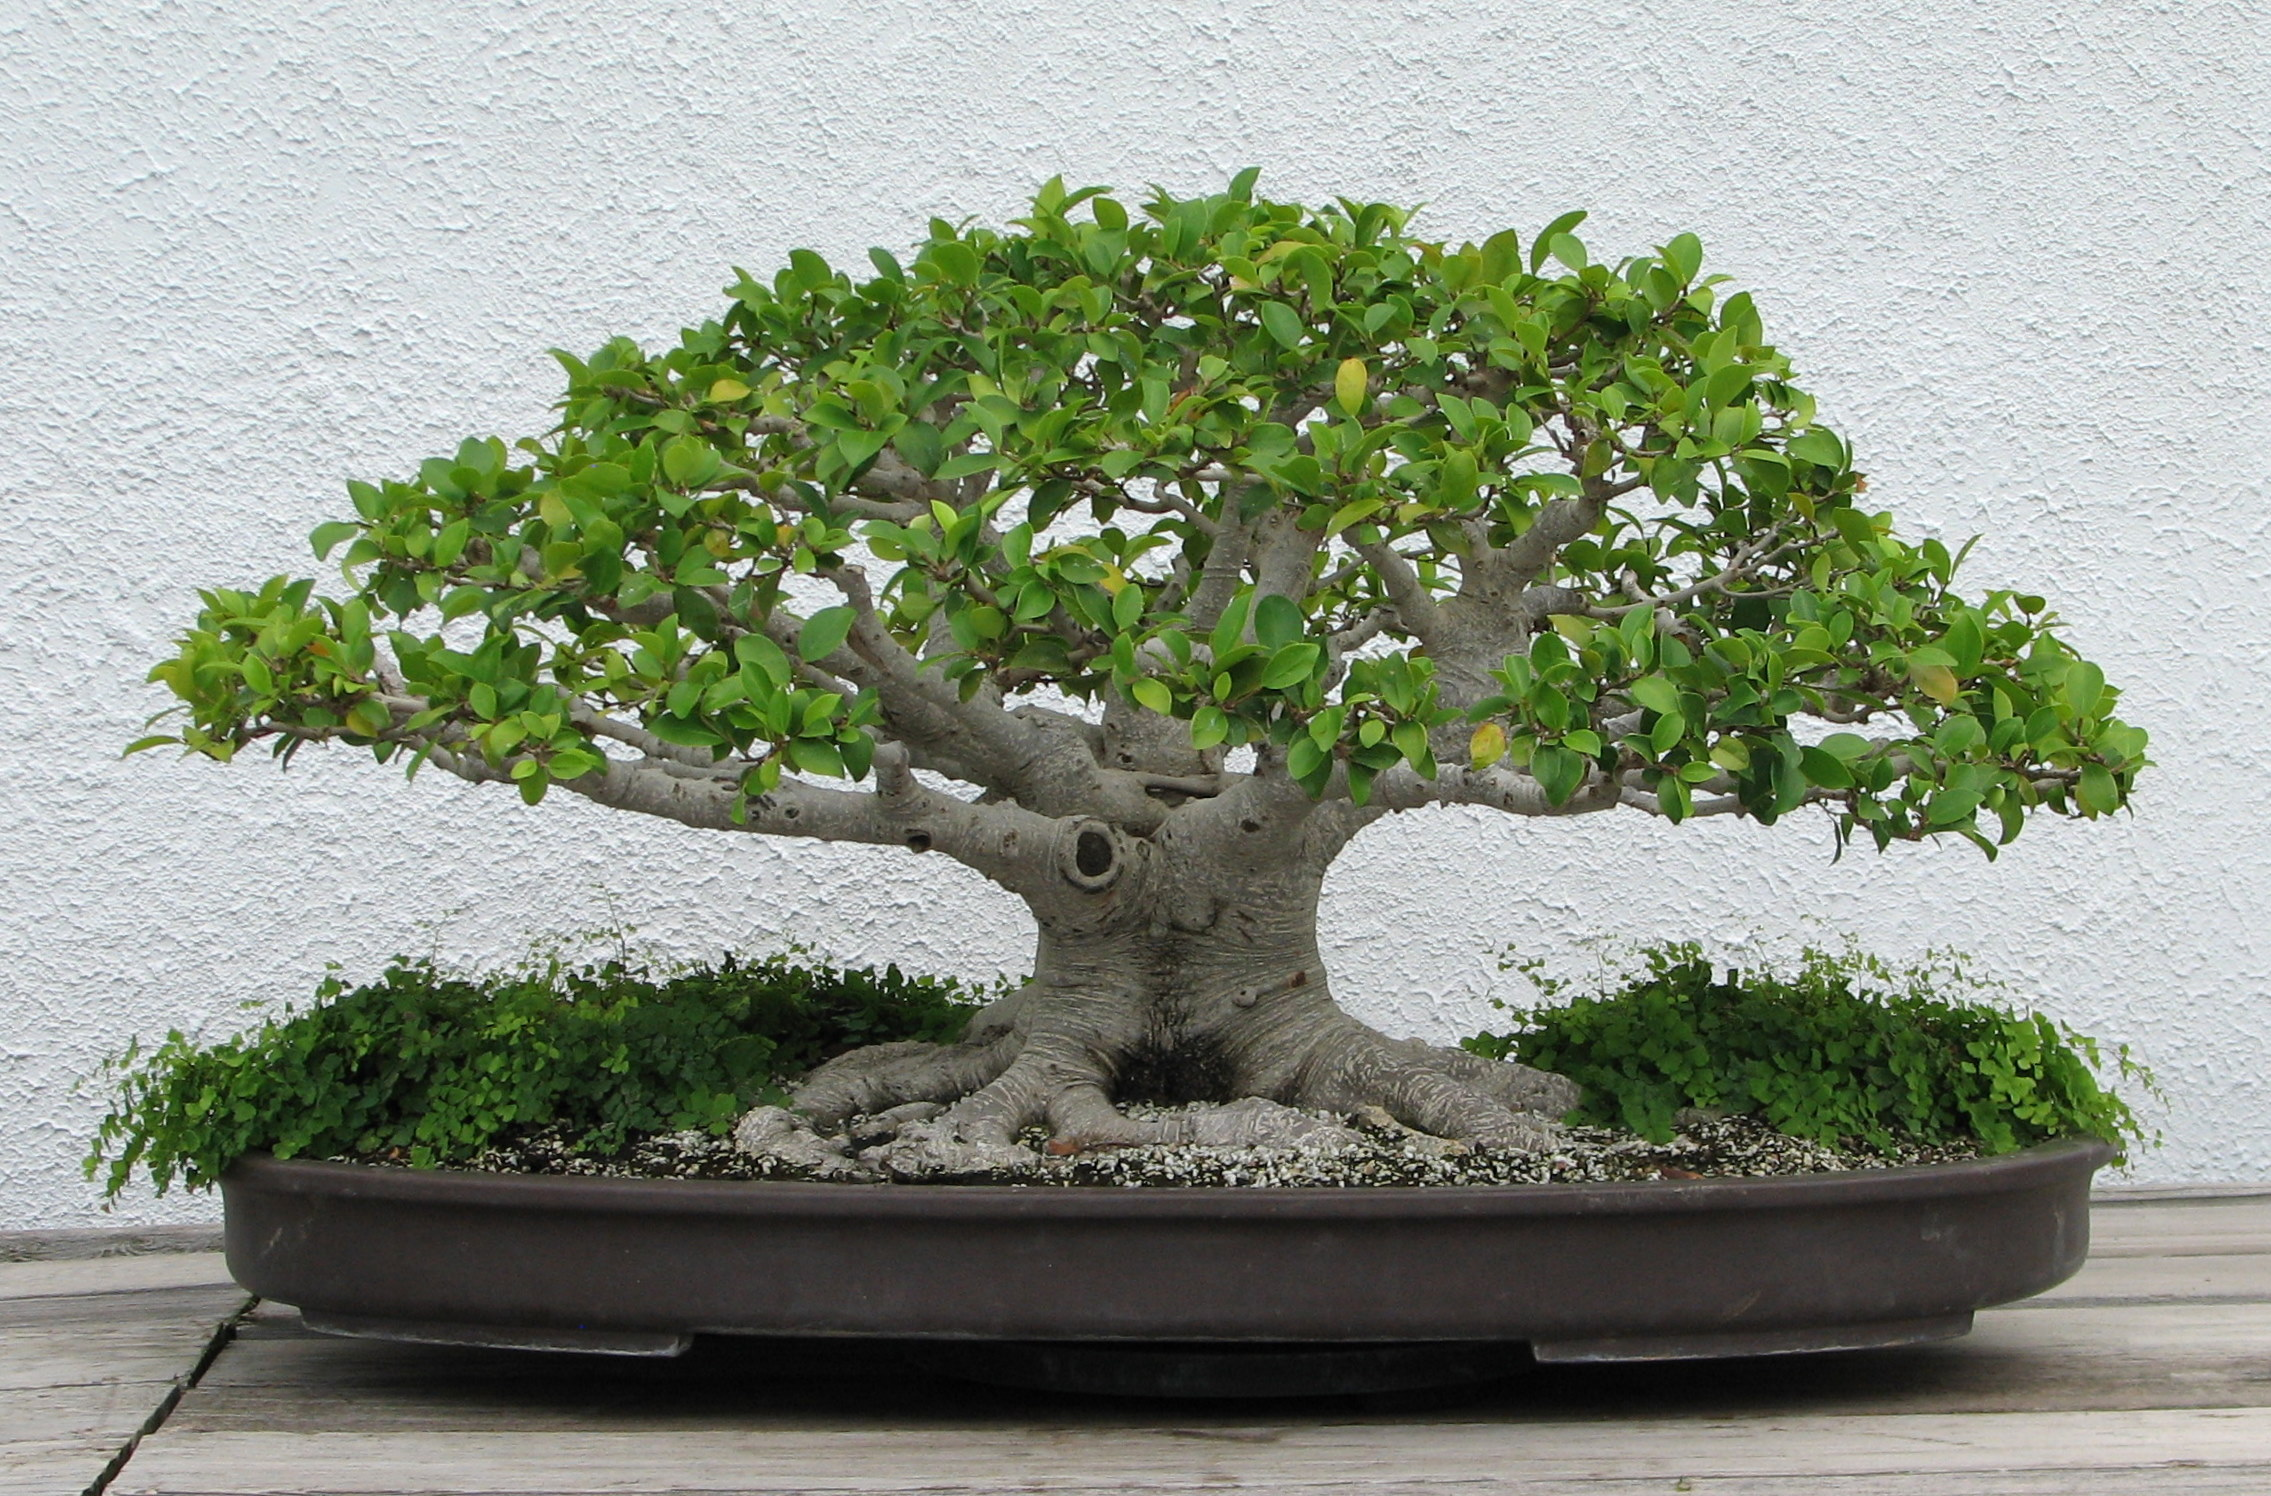 National bonsai foundation wikiwand - Ficus microcarpa cuidados ...